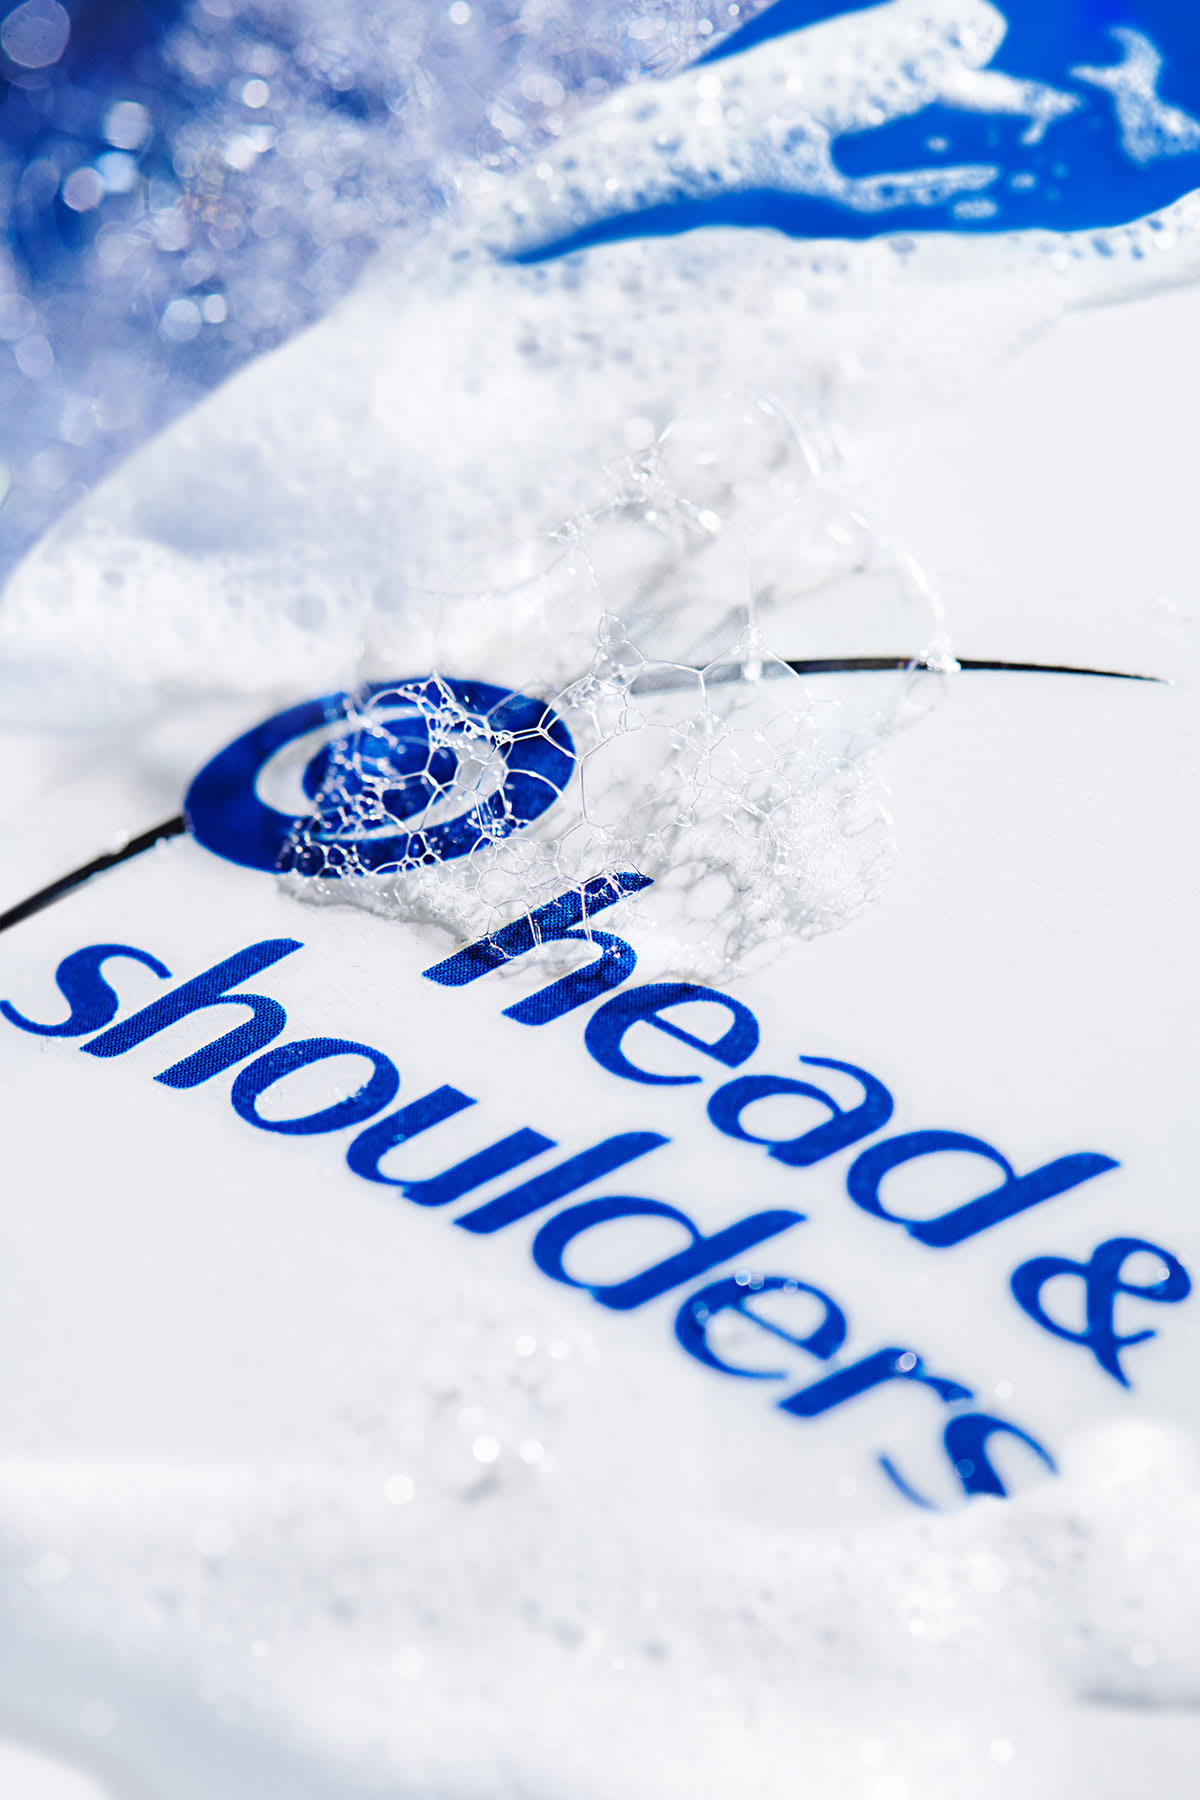 Lather on Head & Shoulders bottle